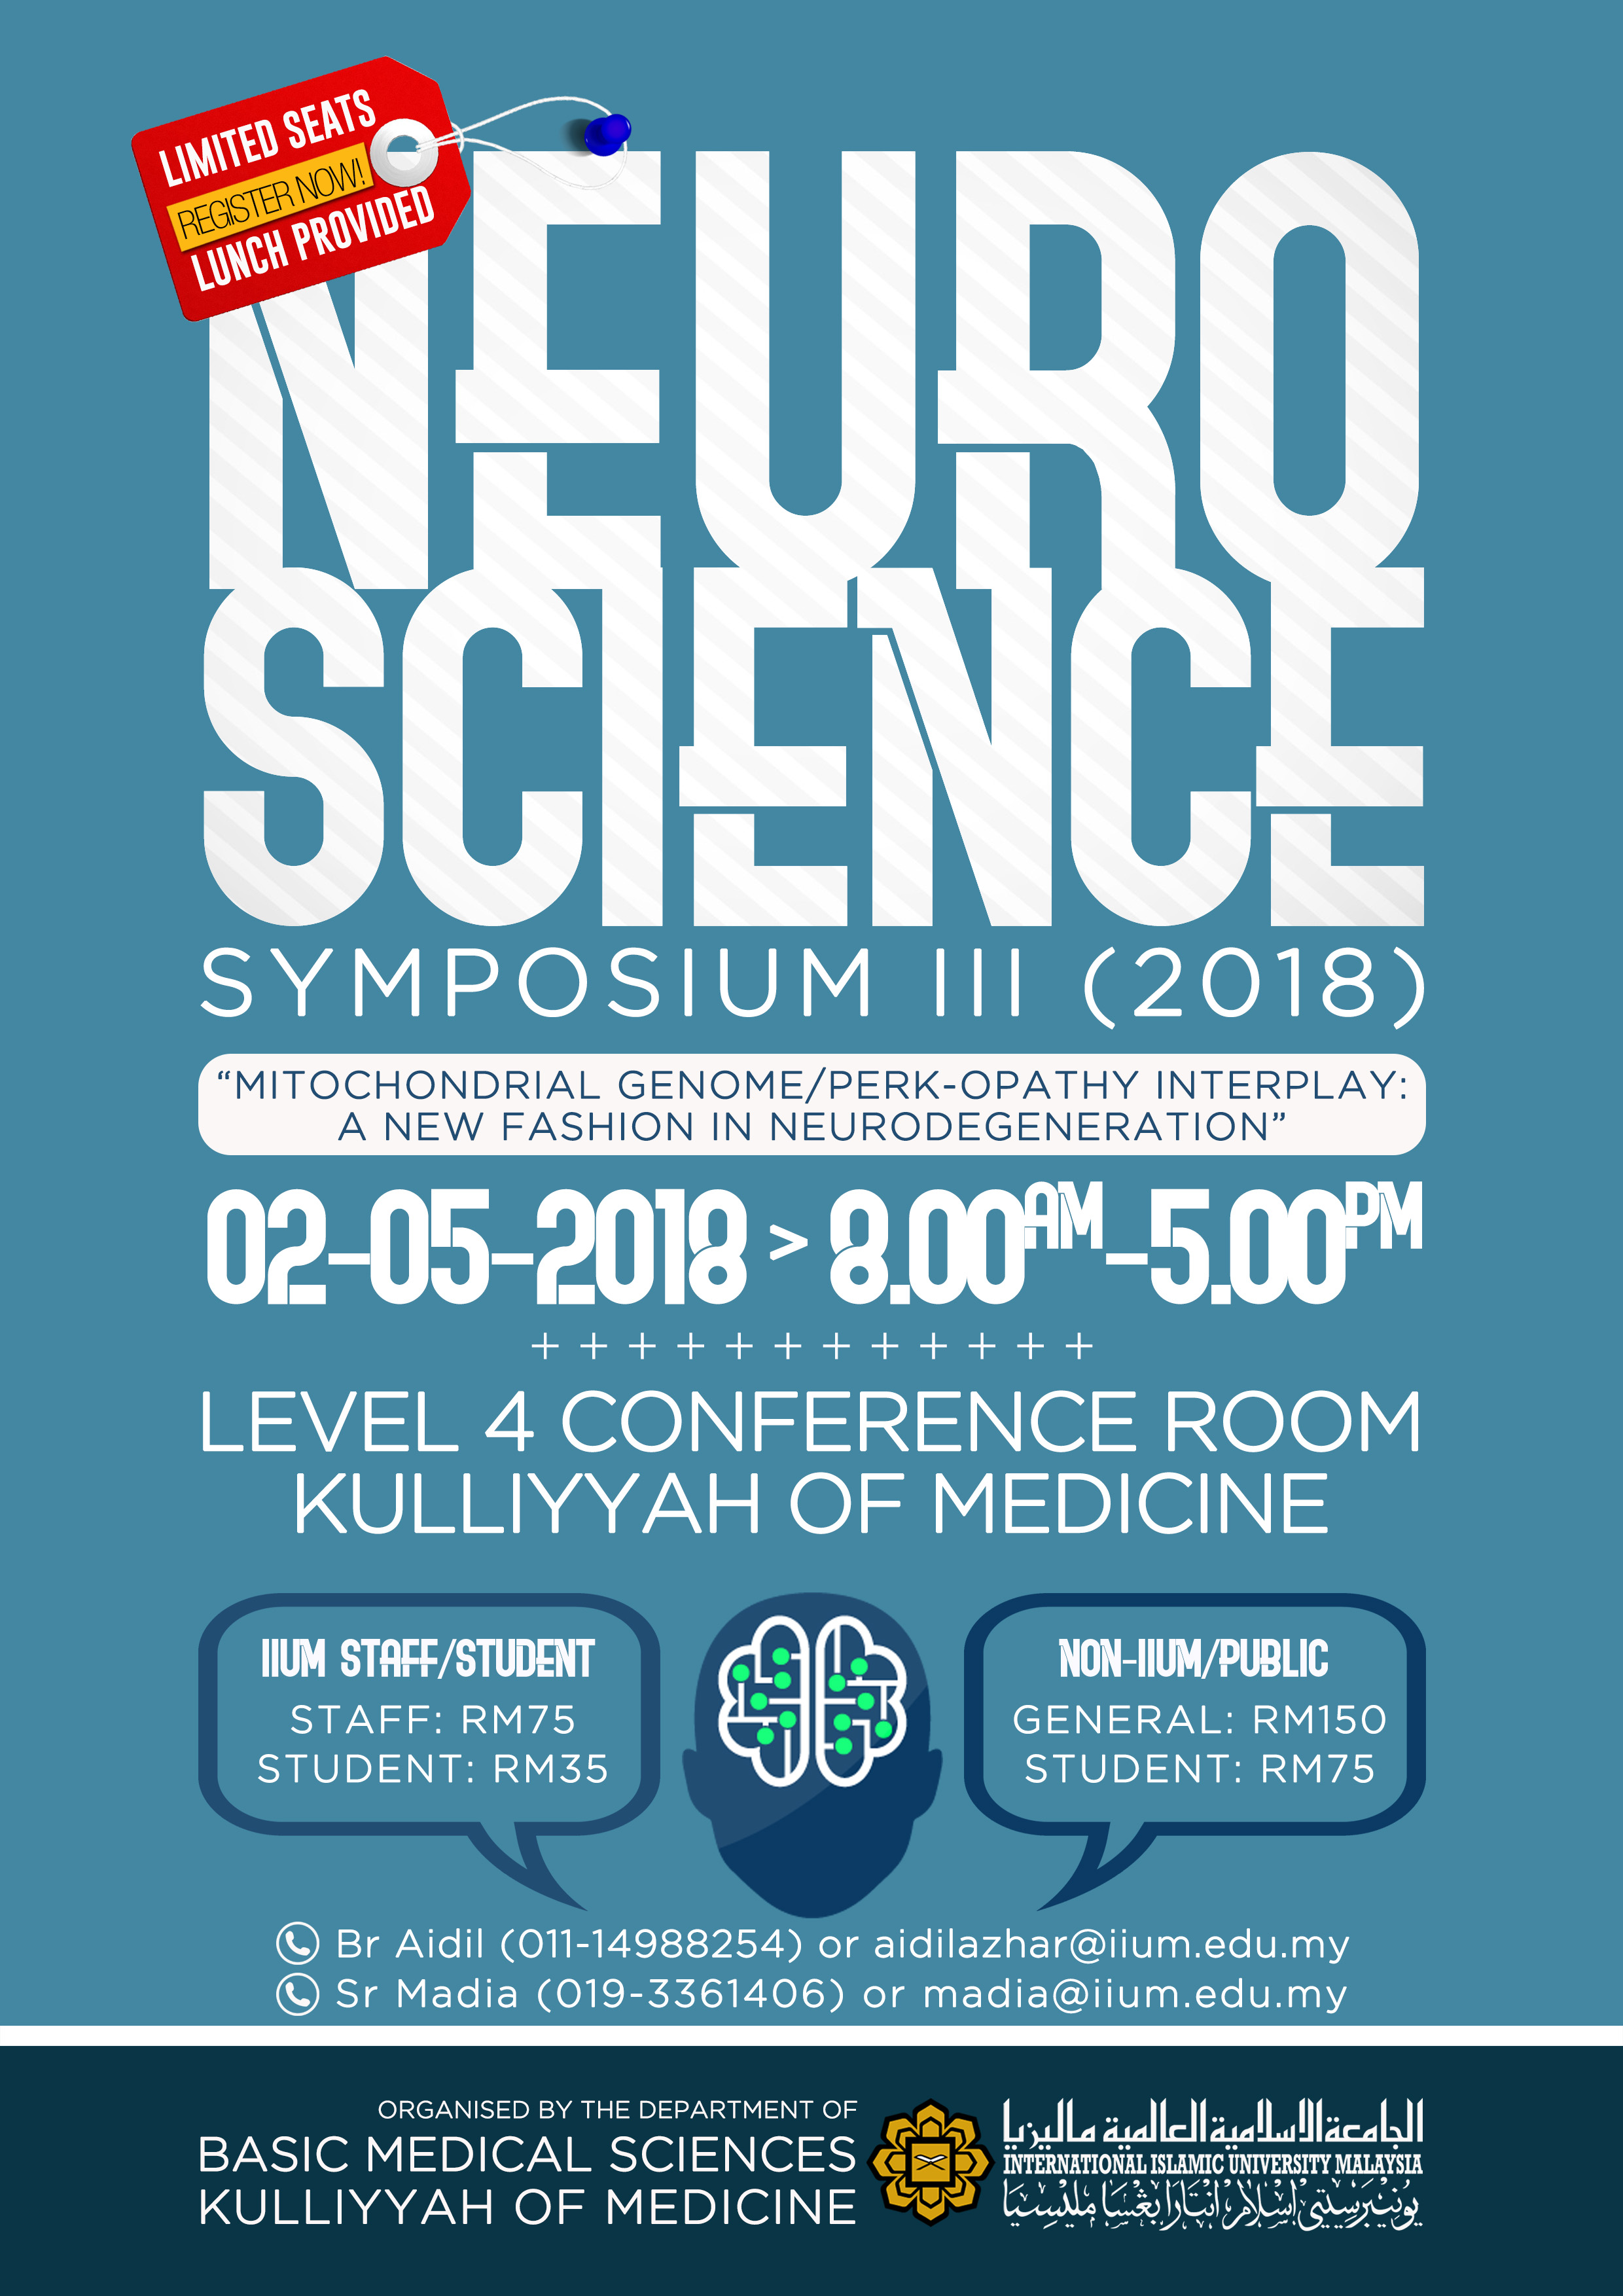 THE 3rd NEUROSCIENCE SYMPOSIUM 2018